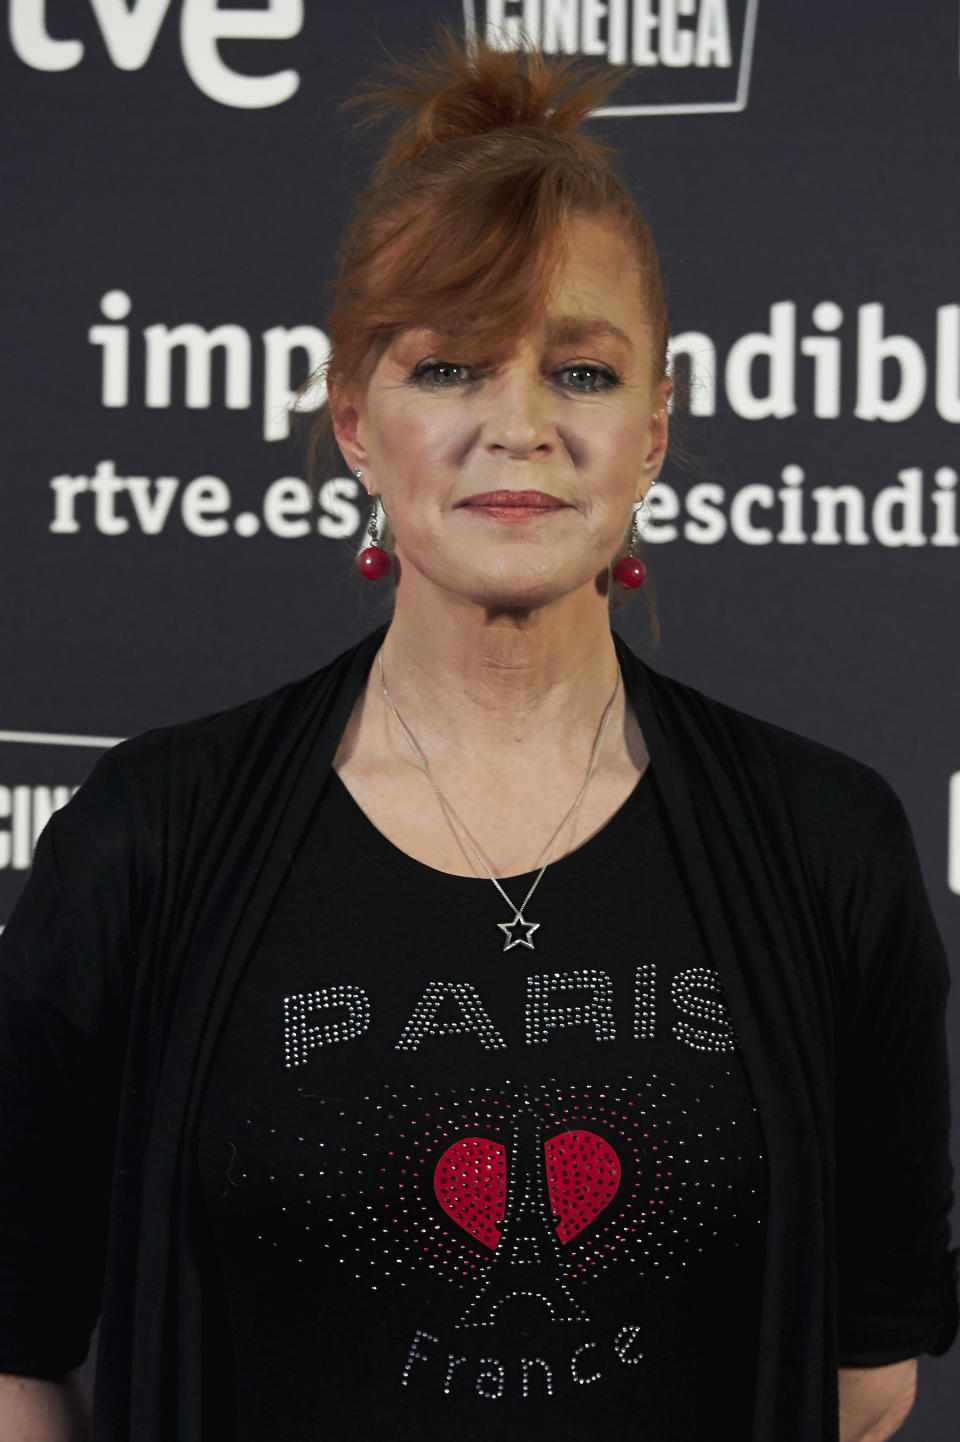 MADRID, SPAIN - MAY 17:  Actress Andrea Bronston attends the 'Imprescindibles' premiere at the Cineteca cinema on May 17, 2017 in Madrid, Spain.  (Photo by Carlos R. Alvarez/WireImage)